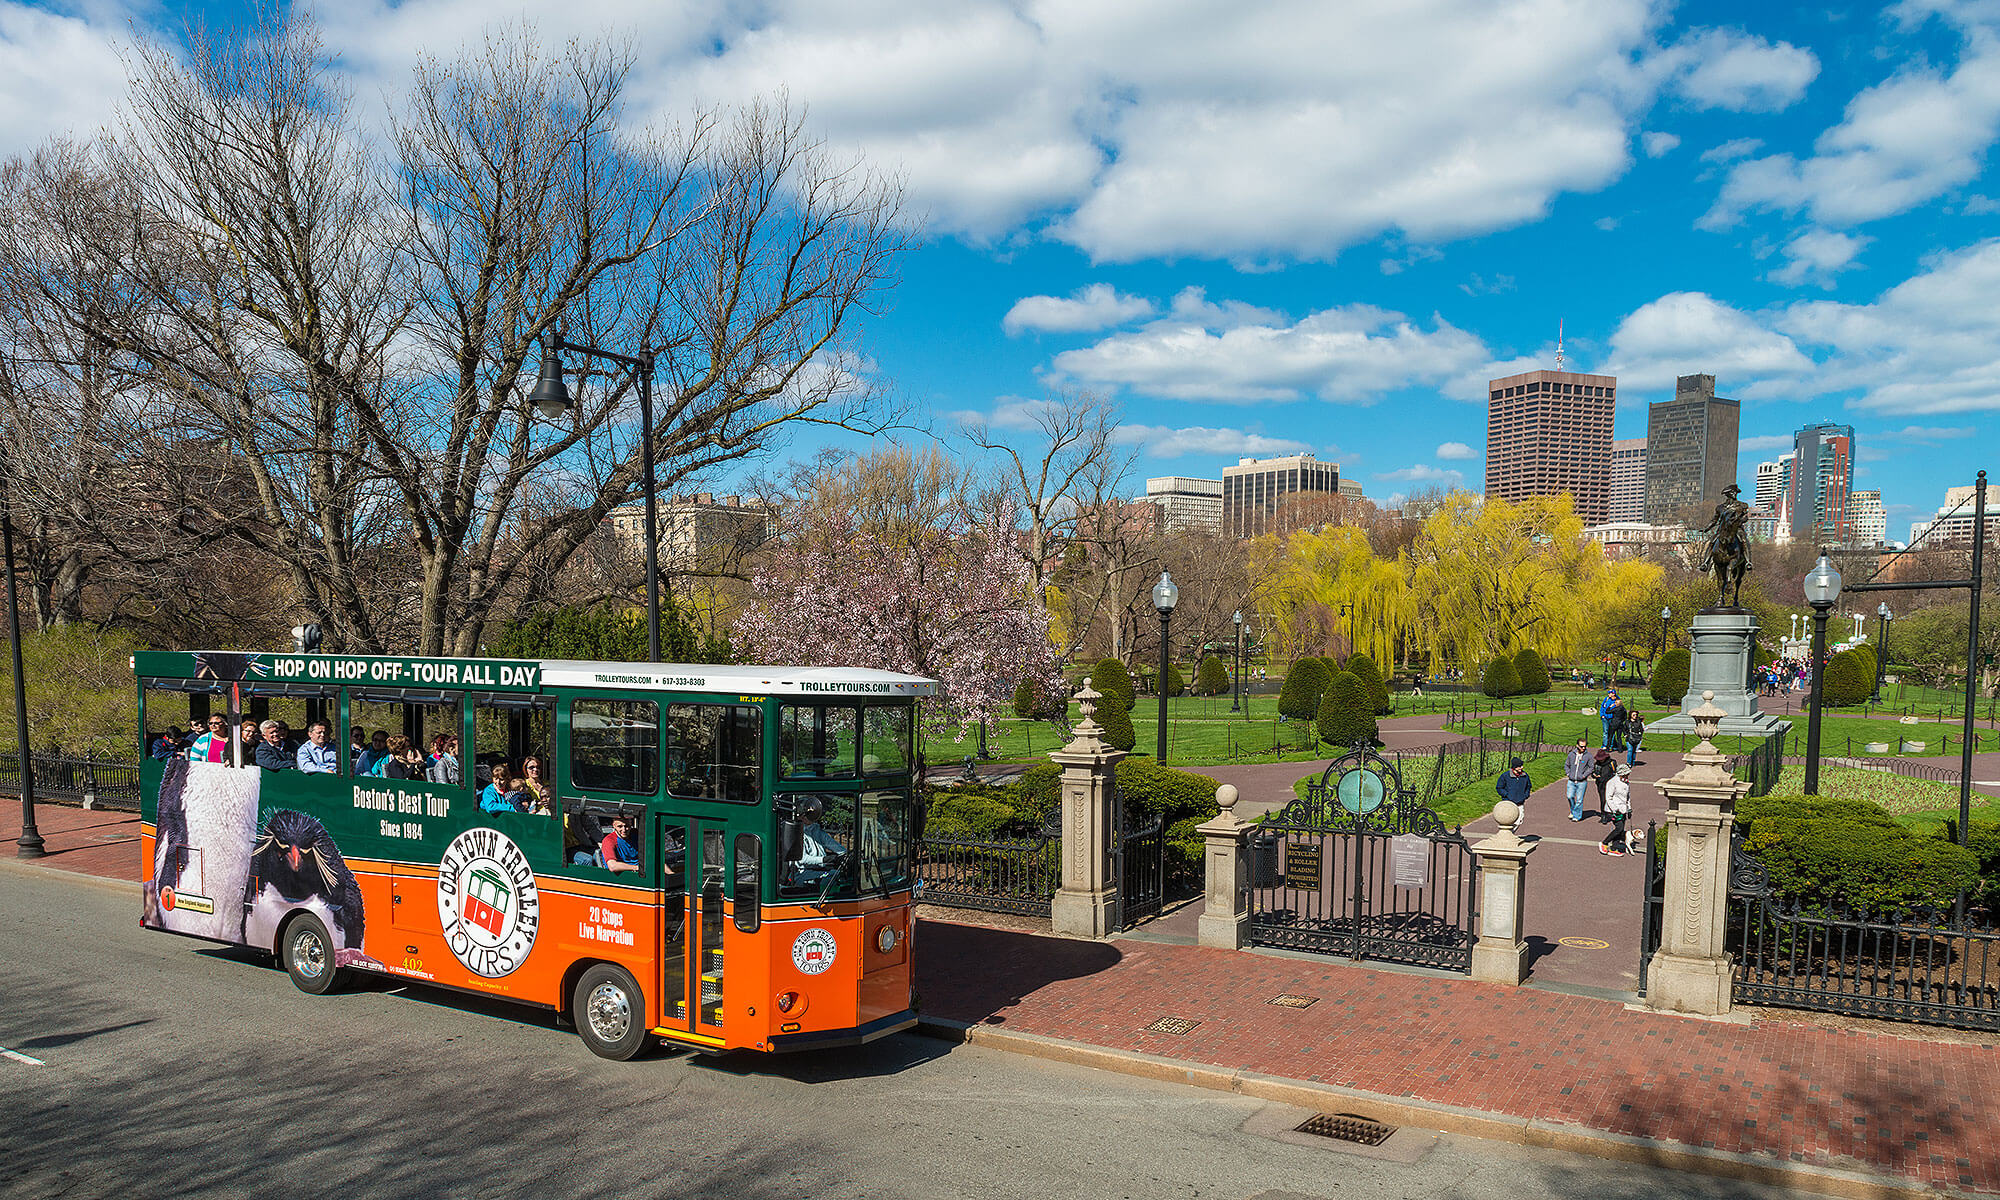 old town trolley in Boston driving past Boston Public Garden and George Washington Statue and city skyline in background